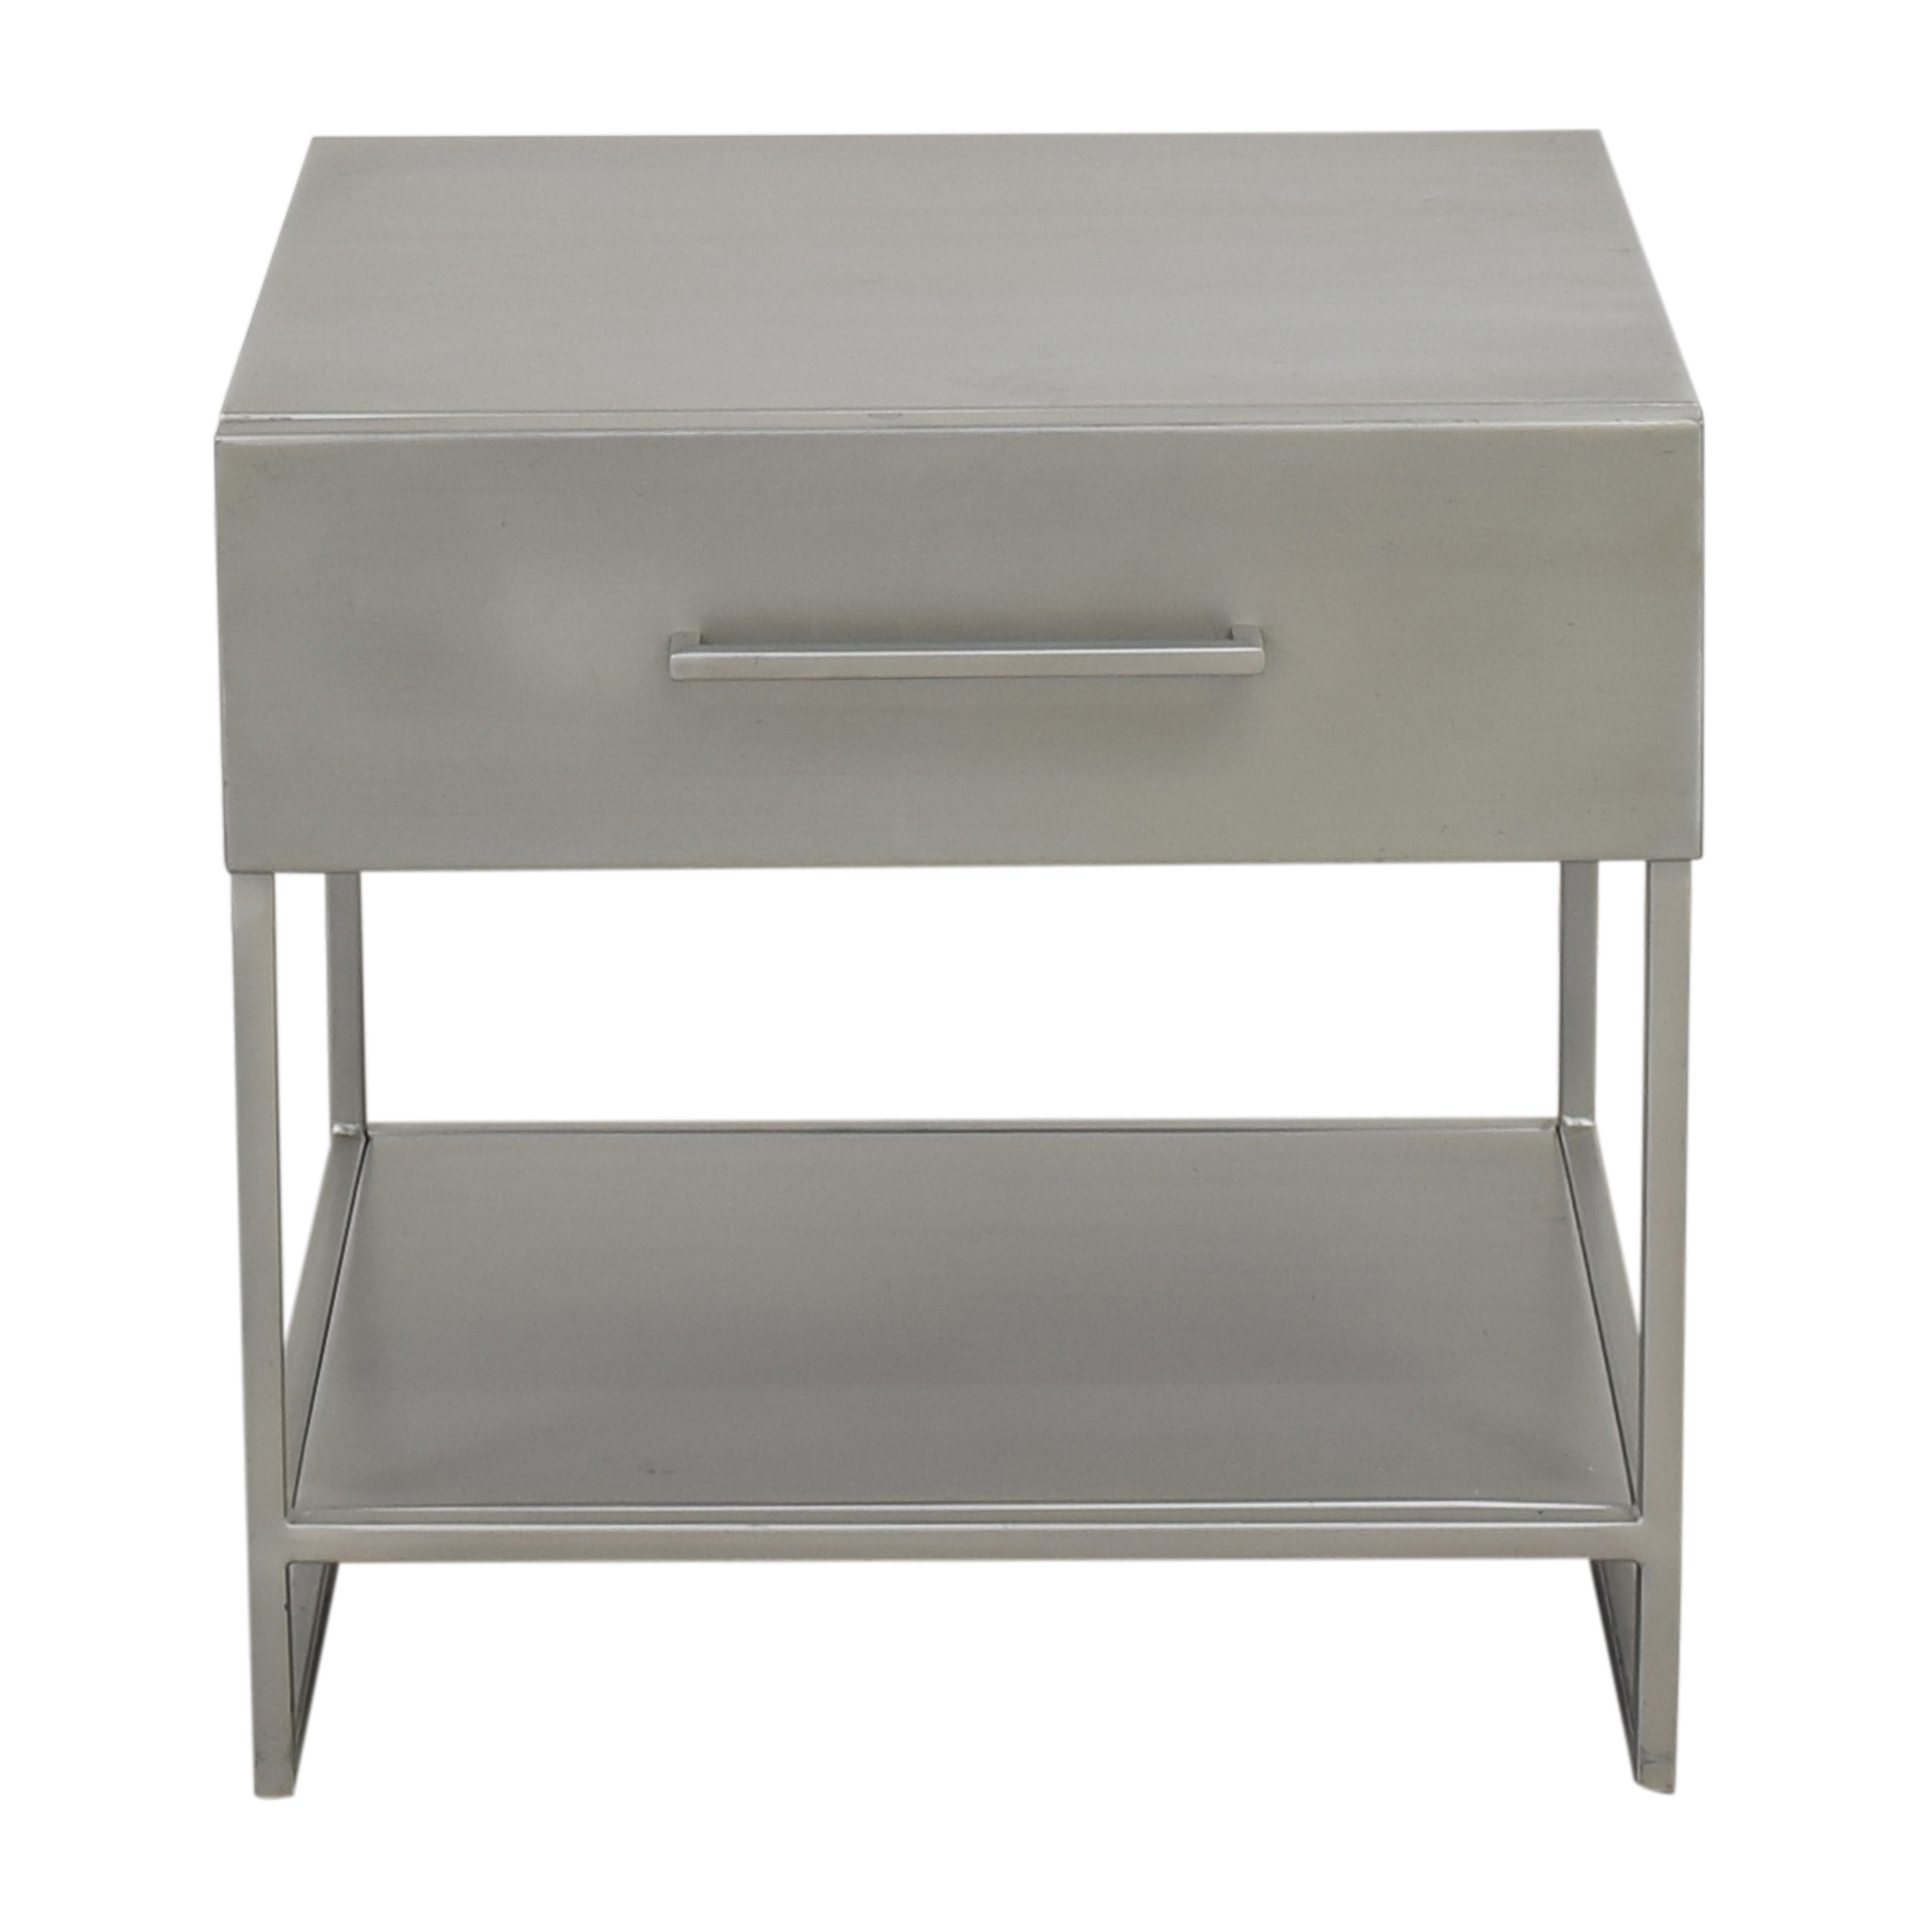 CB2 CB2 Proof Modern Nightstand End Tables